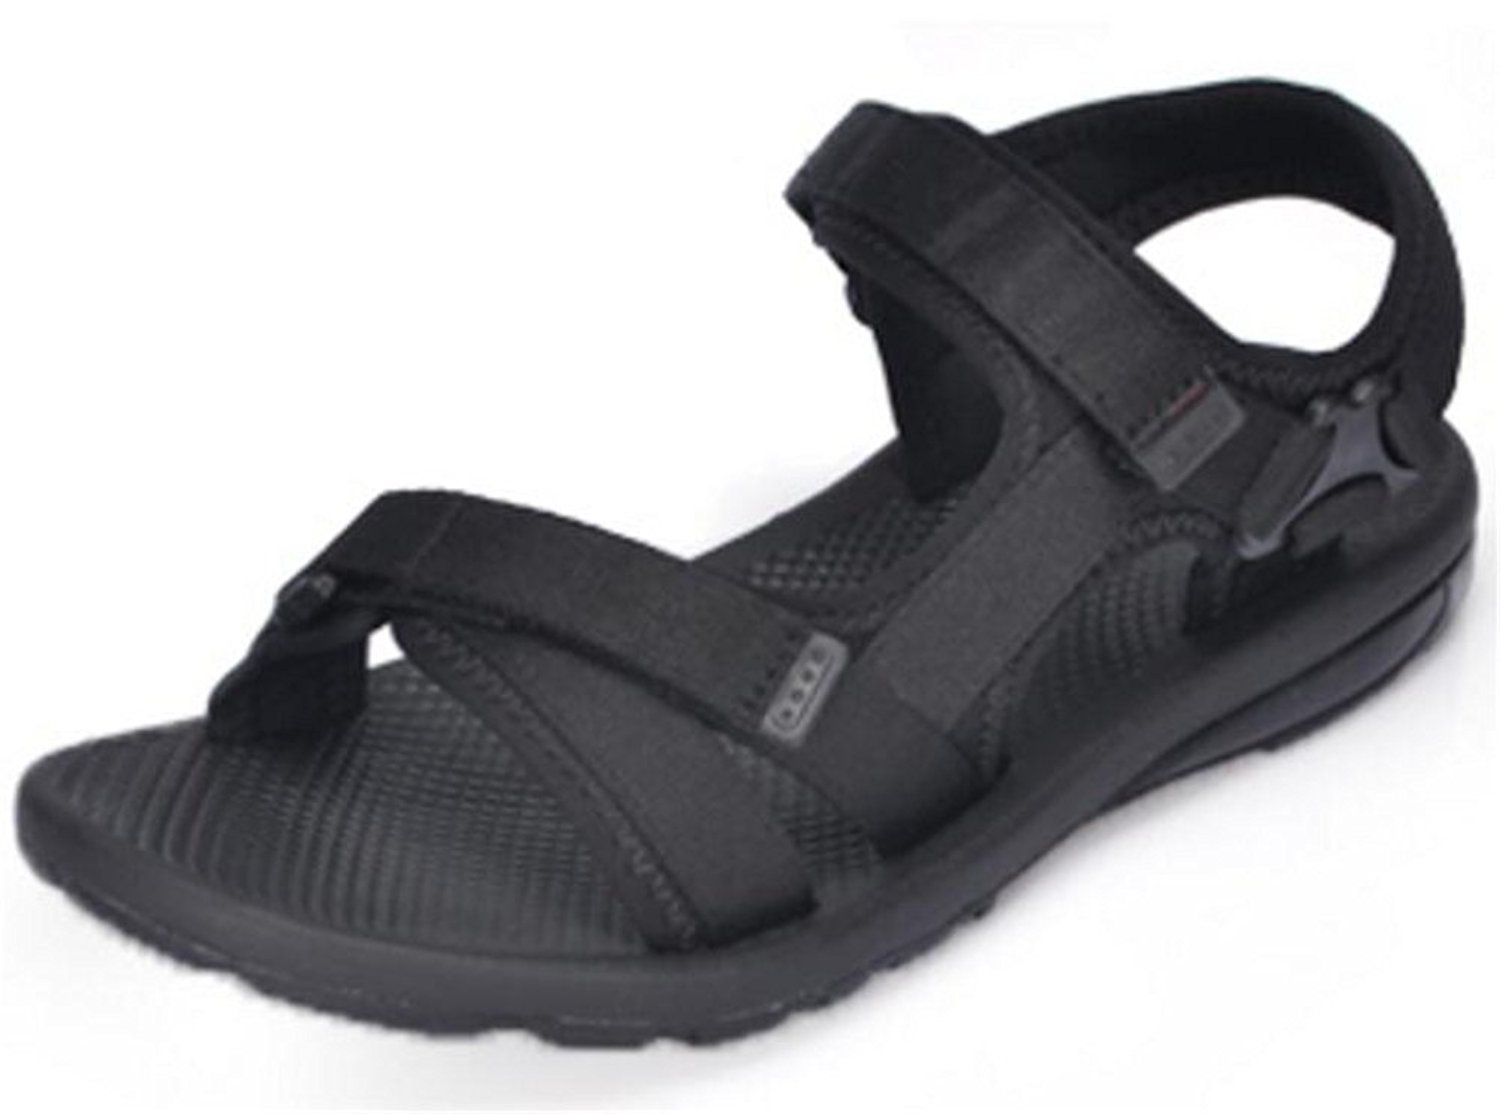 Women's Flat Sporty Beach Sandal Water Shoes Casual Athletic Sandals -- You  can get more details by cl… | Women sport sandals, Casual beach sandals, Womens  slippers